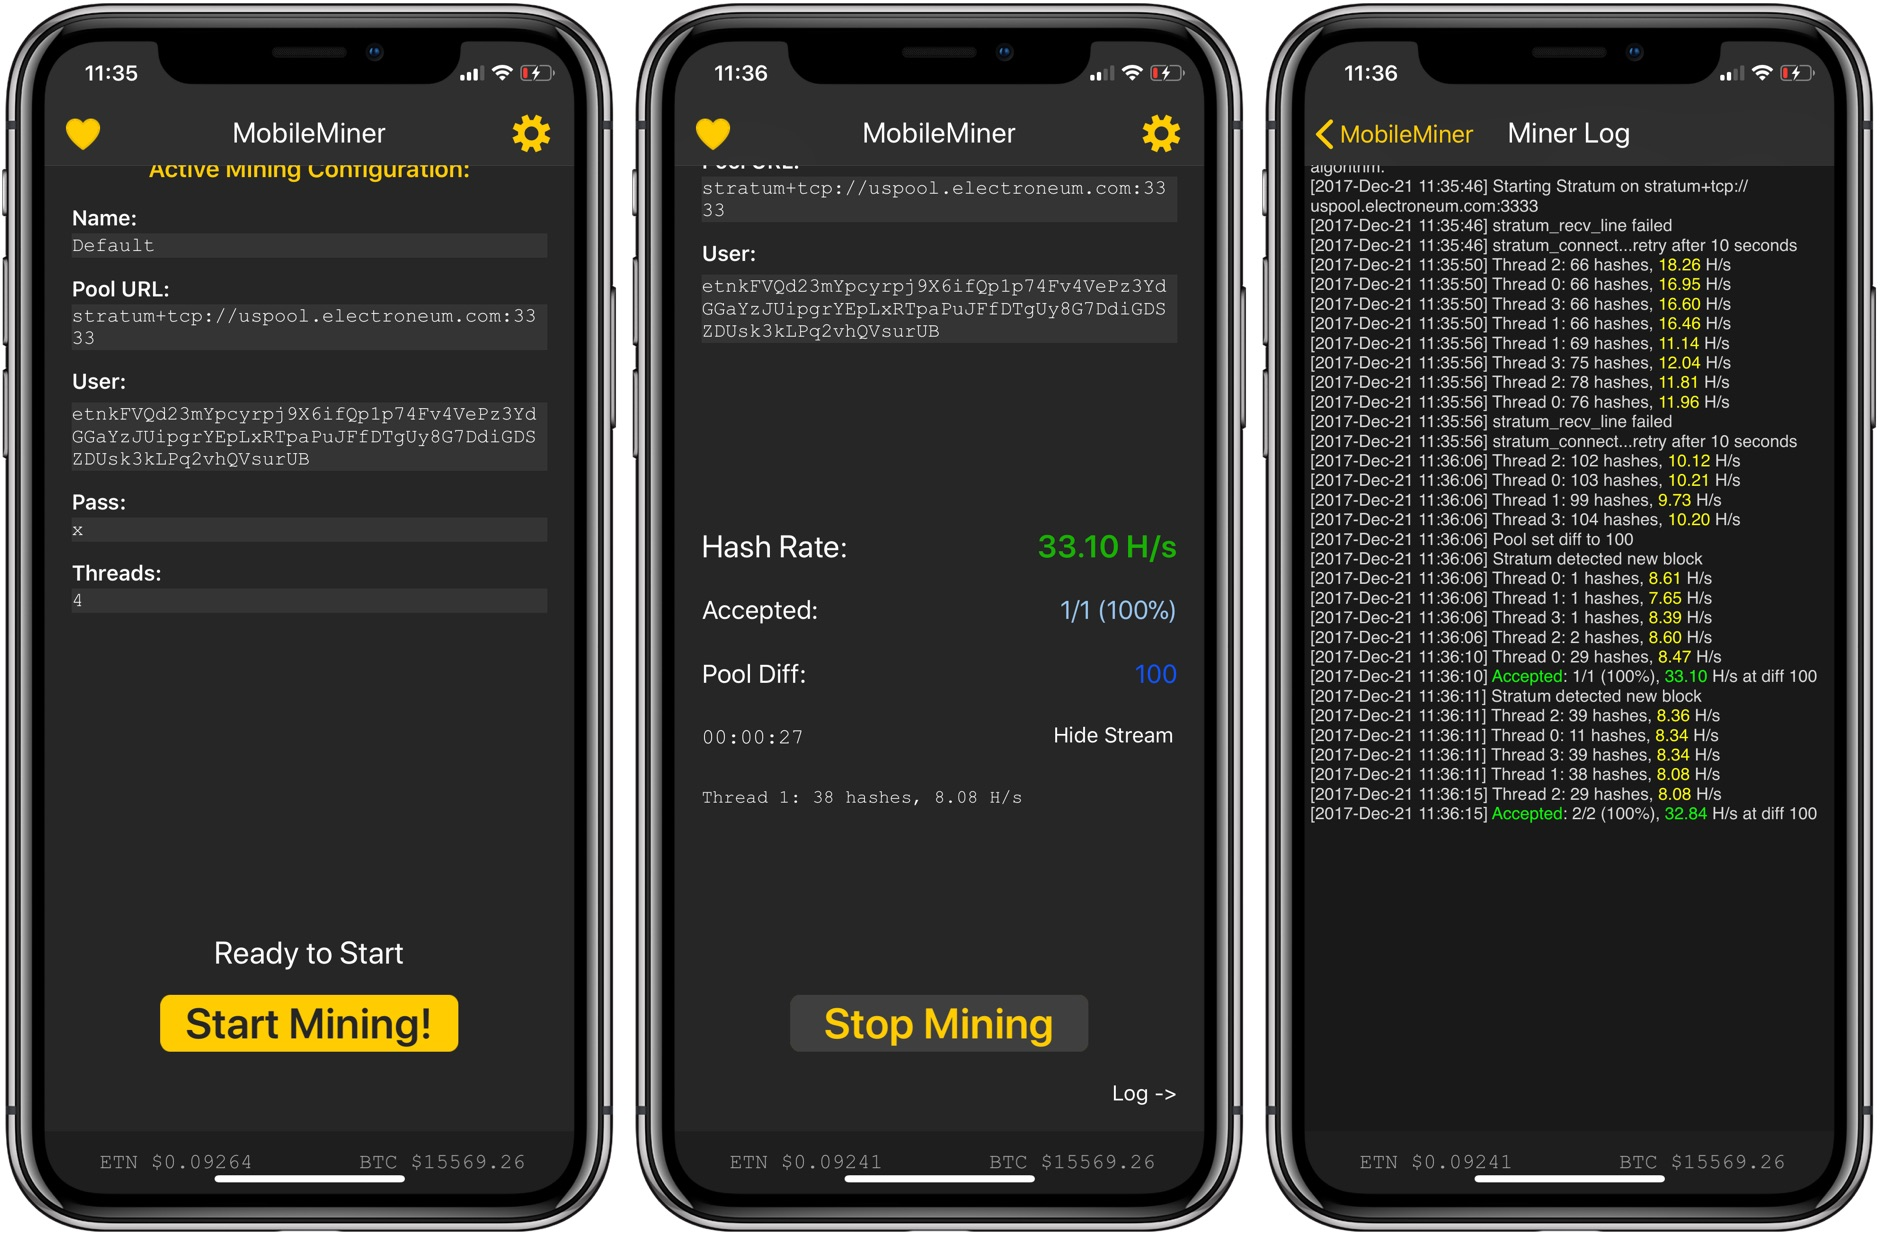 Hands on mobileminer how to mine cryptocurrency on an iphone once youve settled on ccuart Image collections